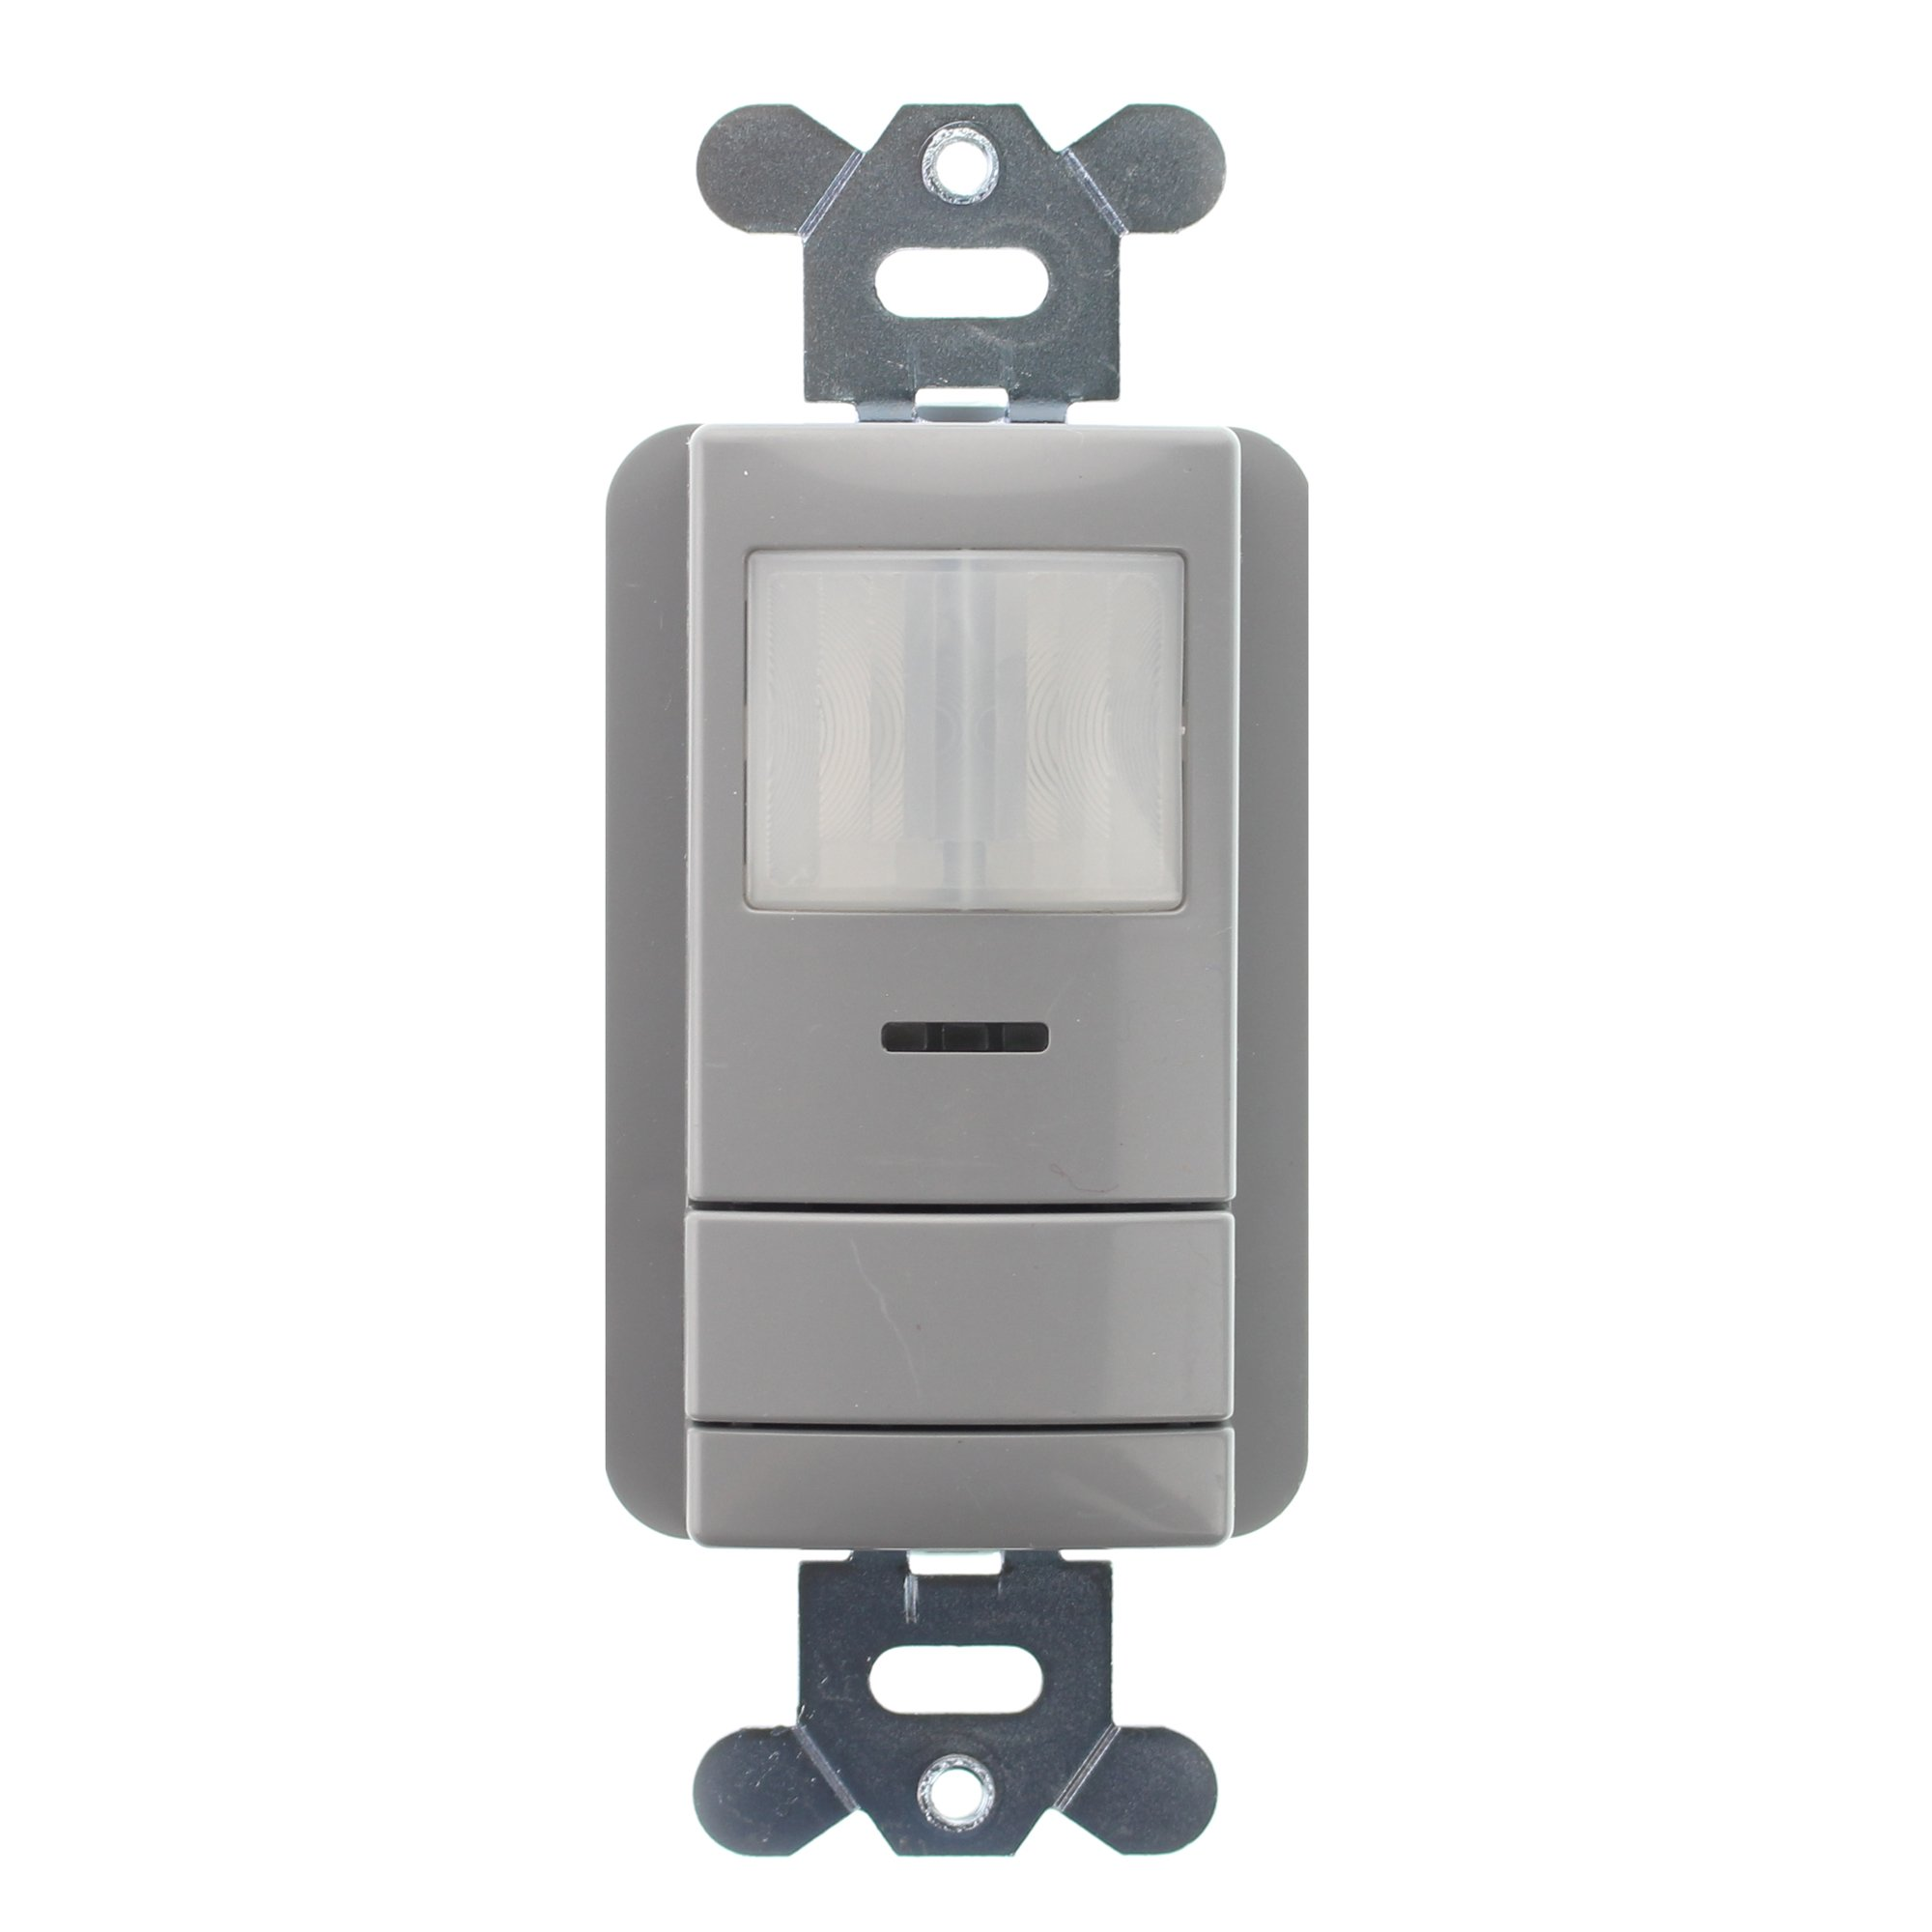 Black 180 Degree 1200 Square Foot Vacancy Sensor Wall Switch 3 by 3 Auto ON//OFF Passive Infrared Leviton OSSNL-IFE Night Light